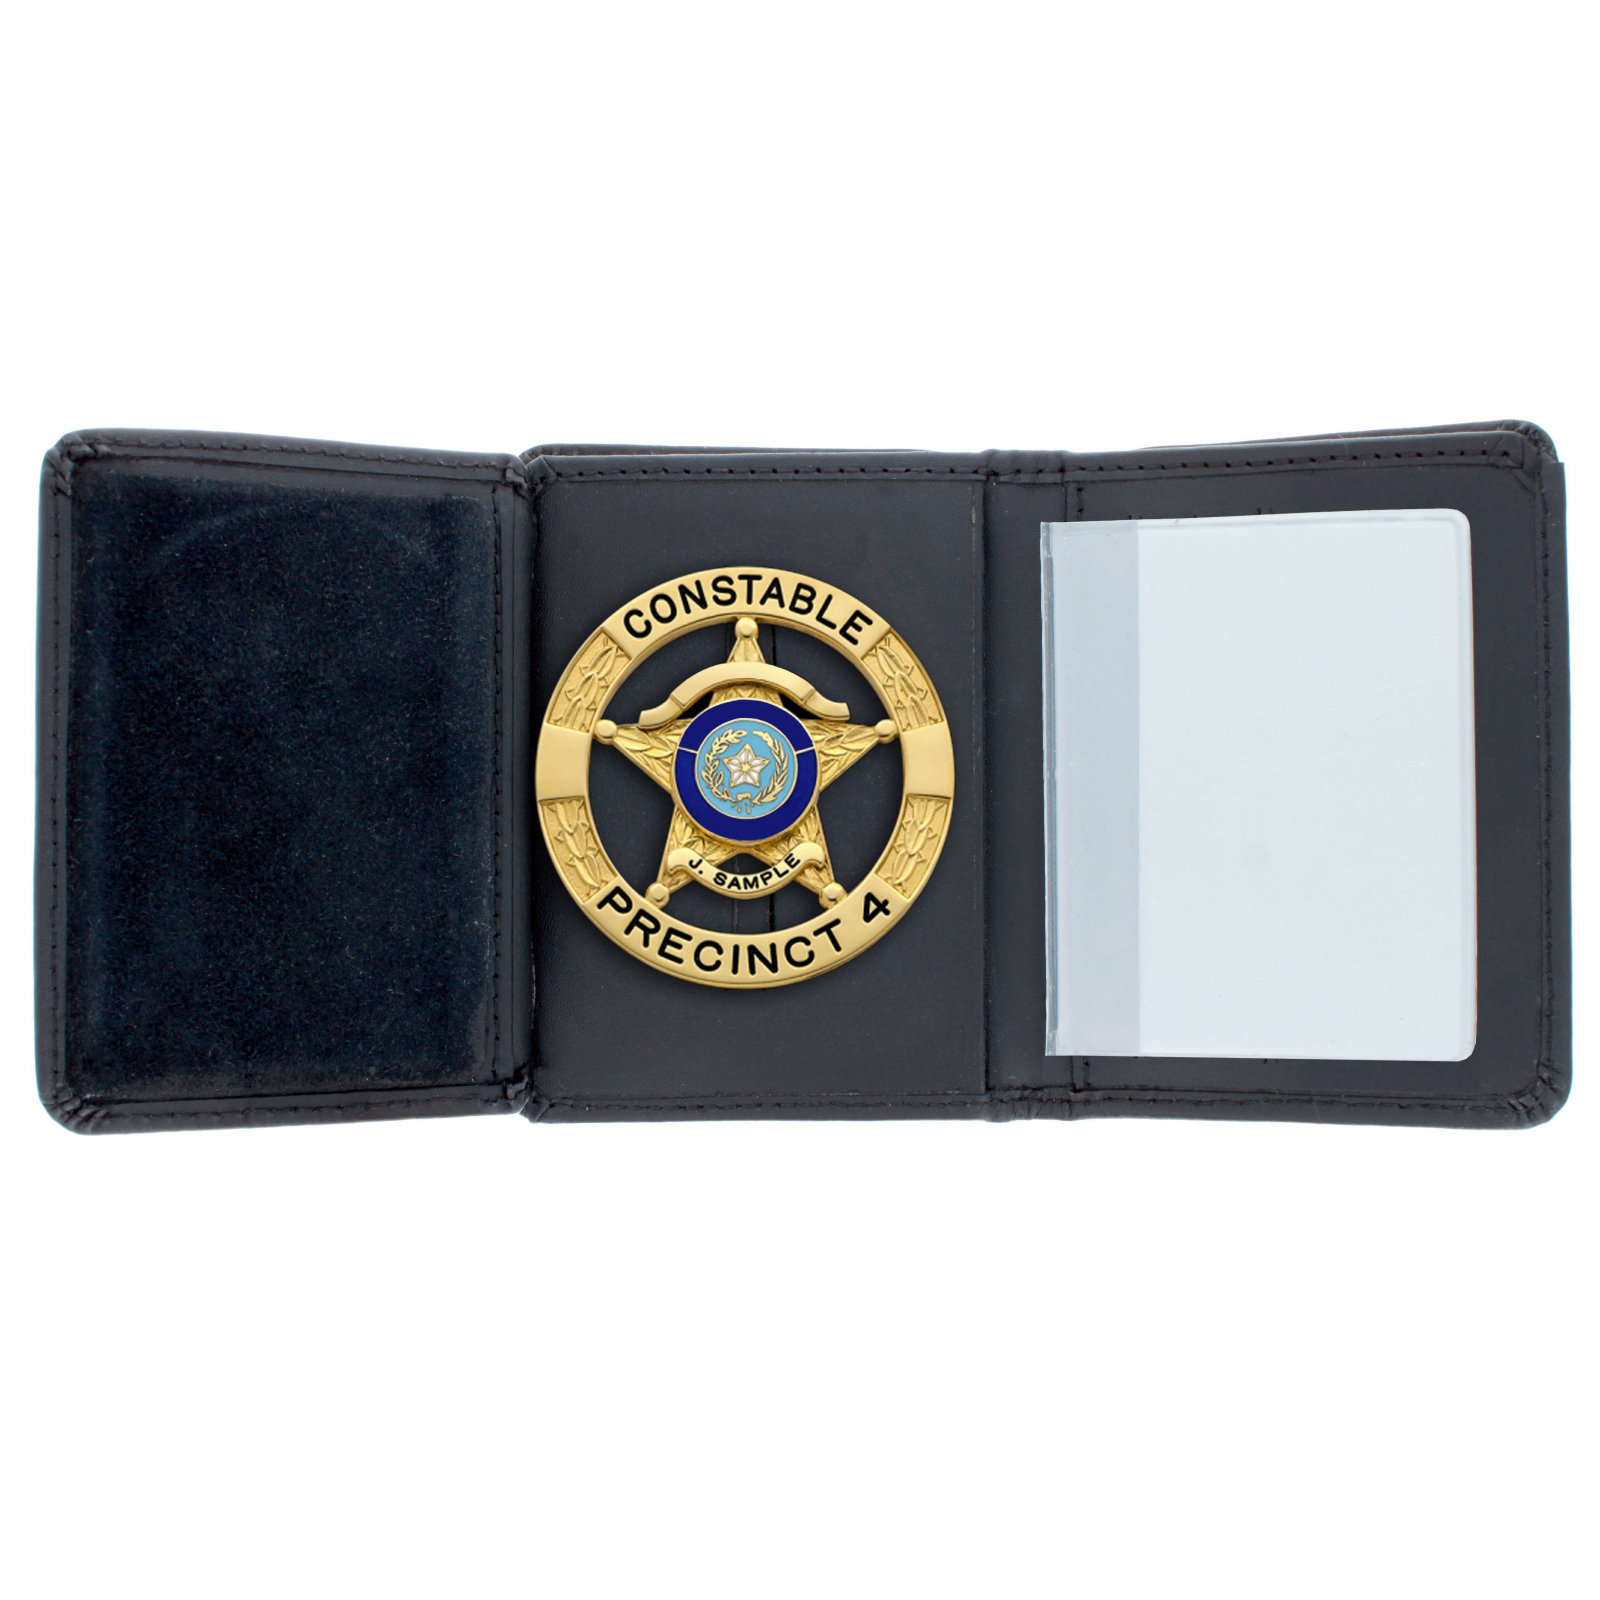 ASR Federal Law Enforcement RFID Leather Hidden Badge Folding Wallet - Round